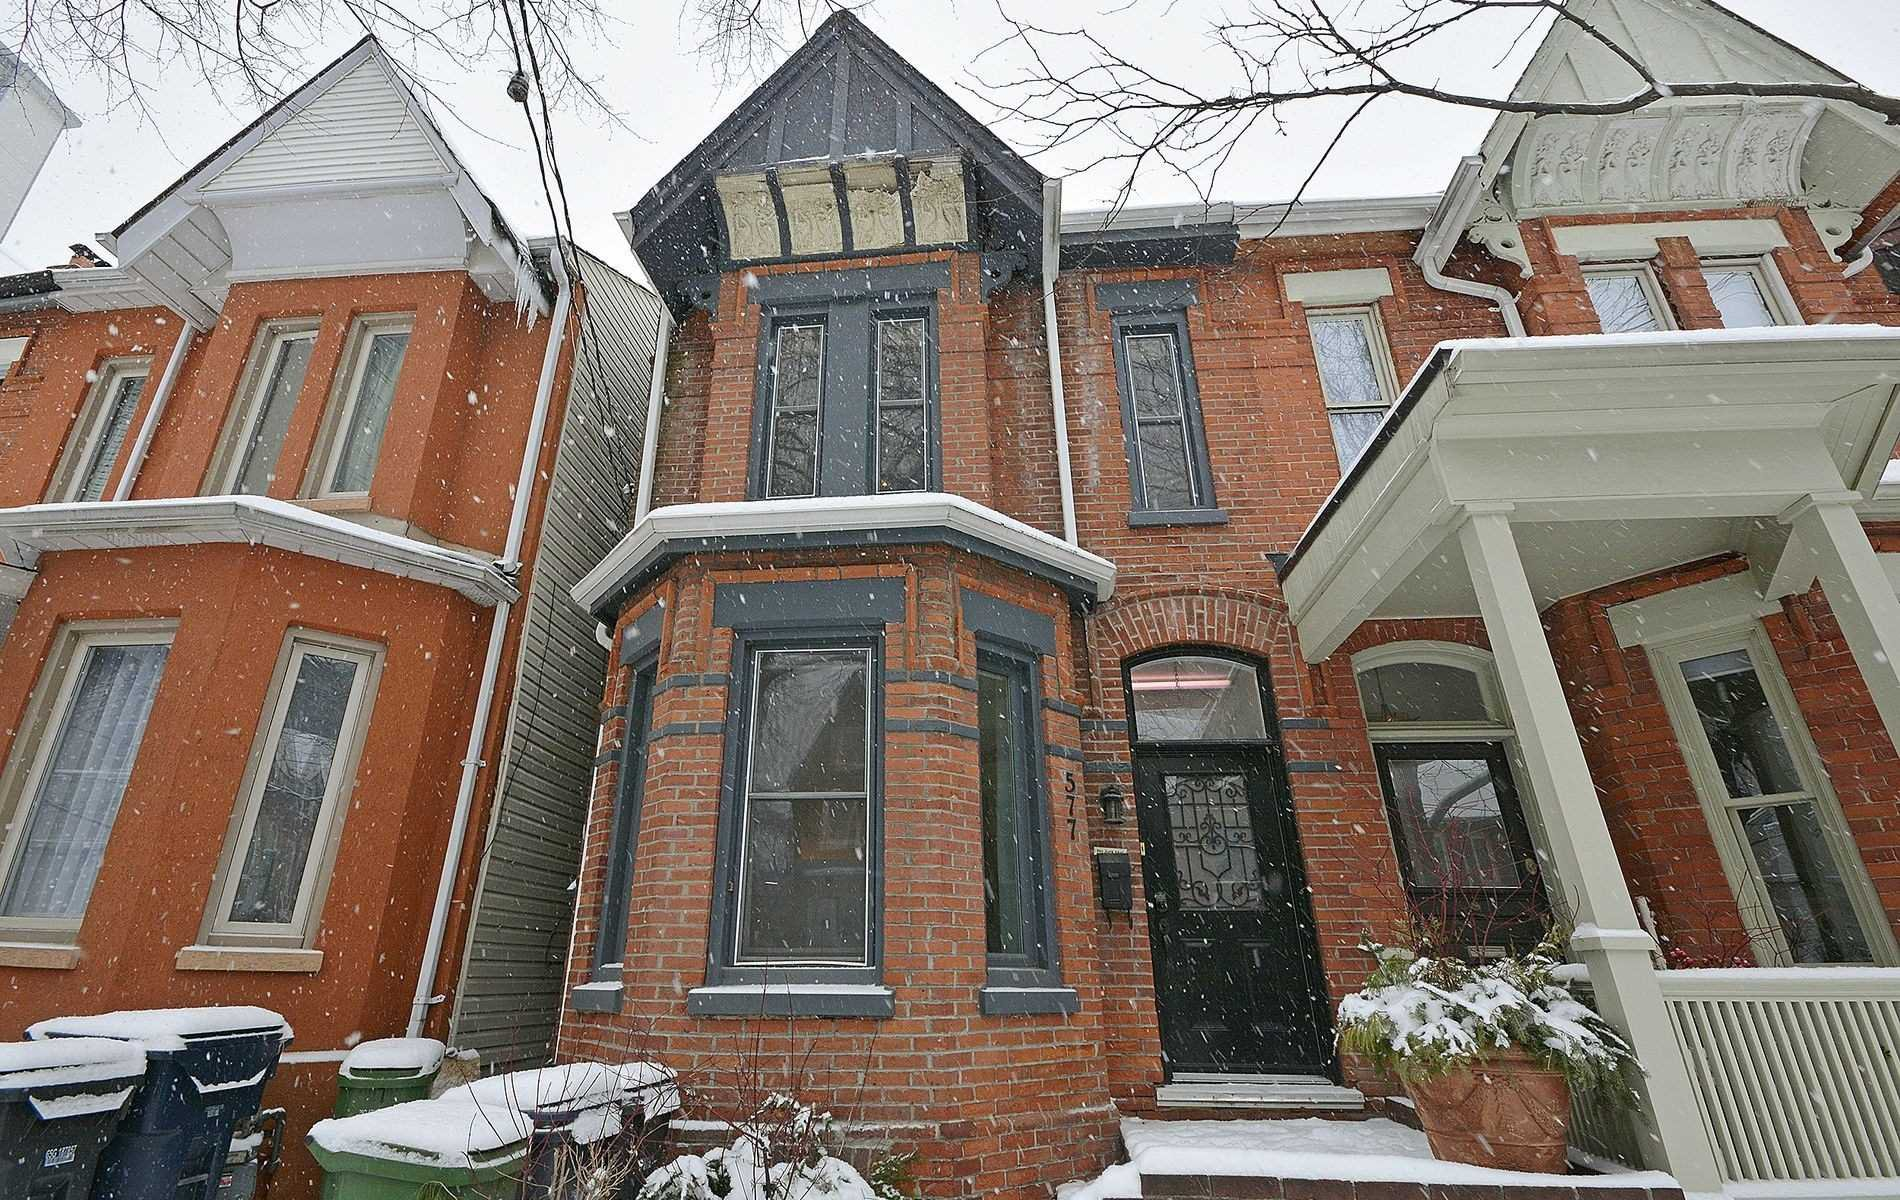 Main Photo: 577 Ontario Street in Toronto: Cabbagetown-South St. James Town House (2-Storey) for lease (Toronto C08)  : MLS®# C4689364